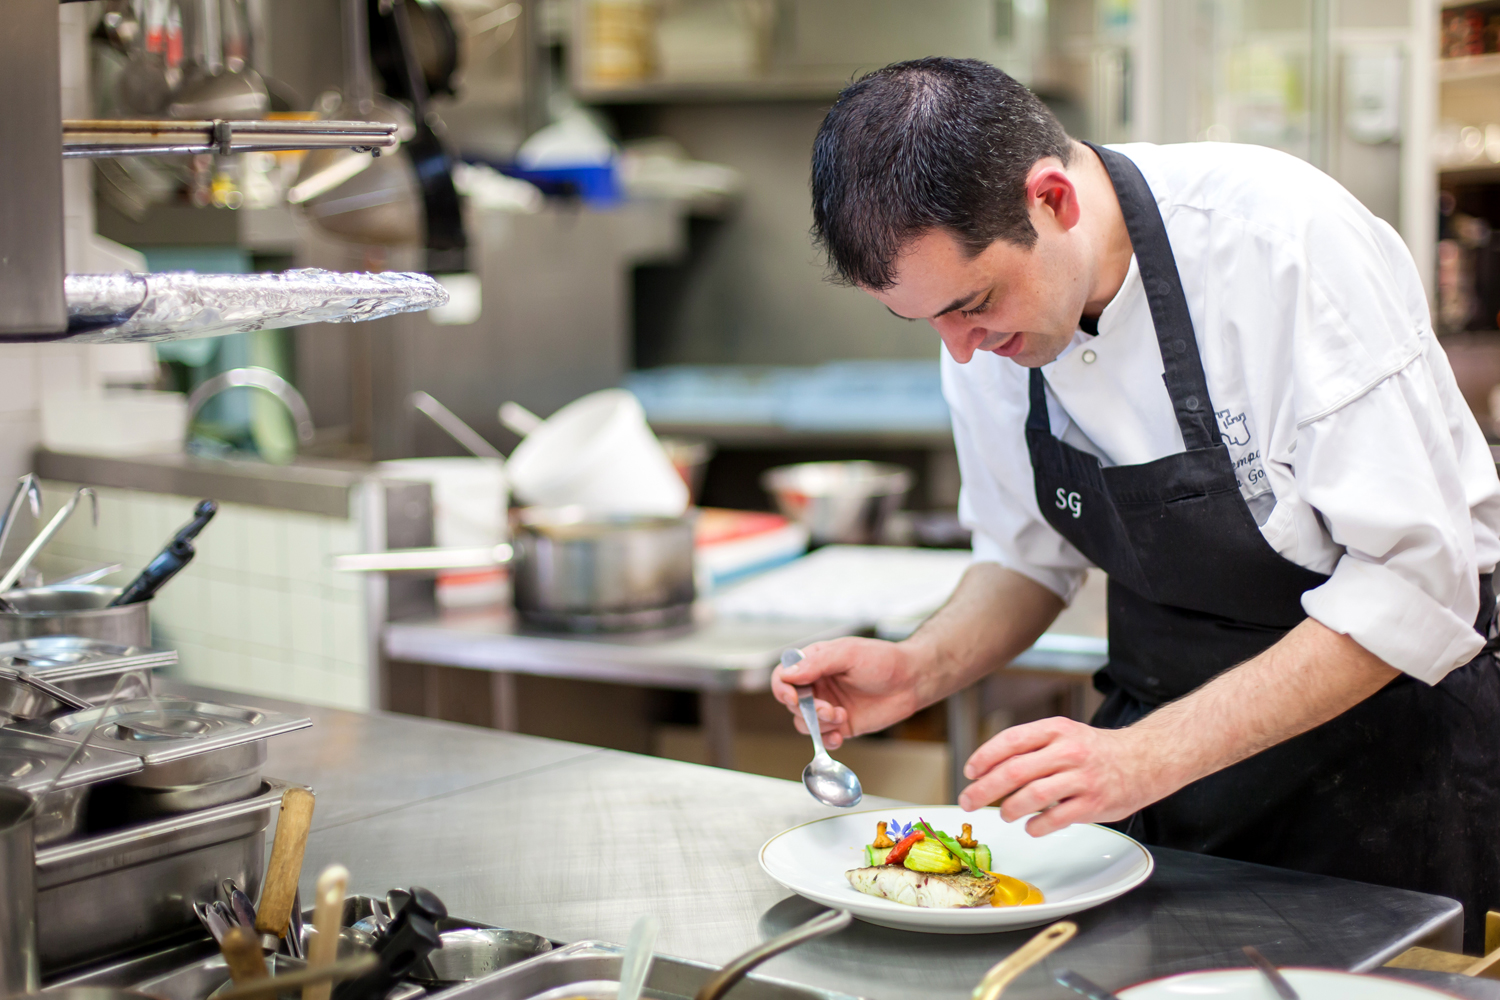 Culinary Arts best degrees to have